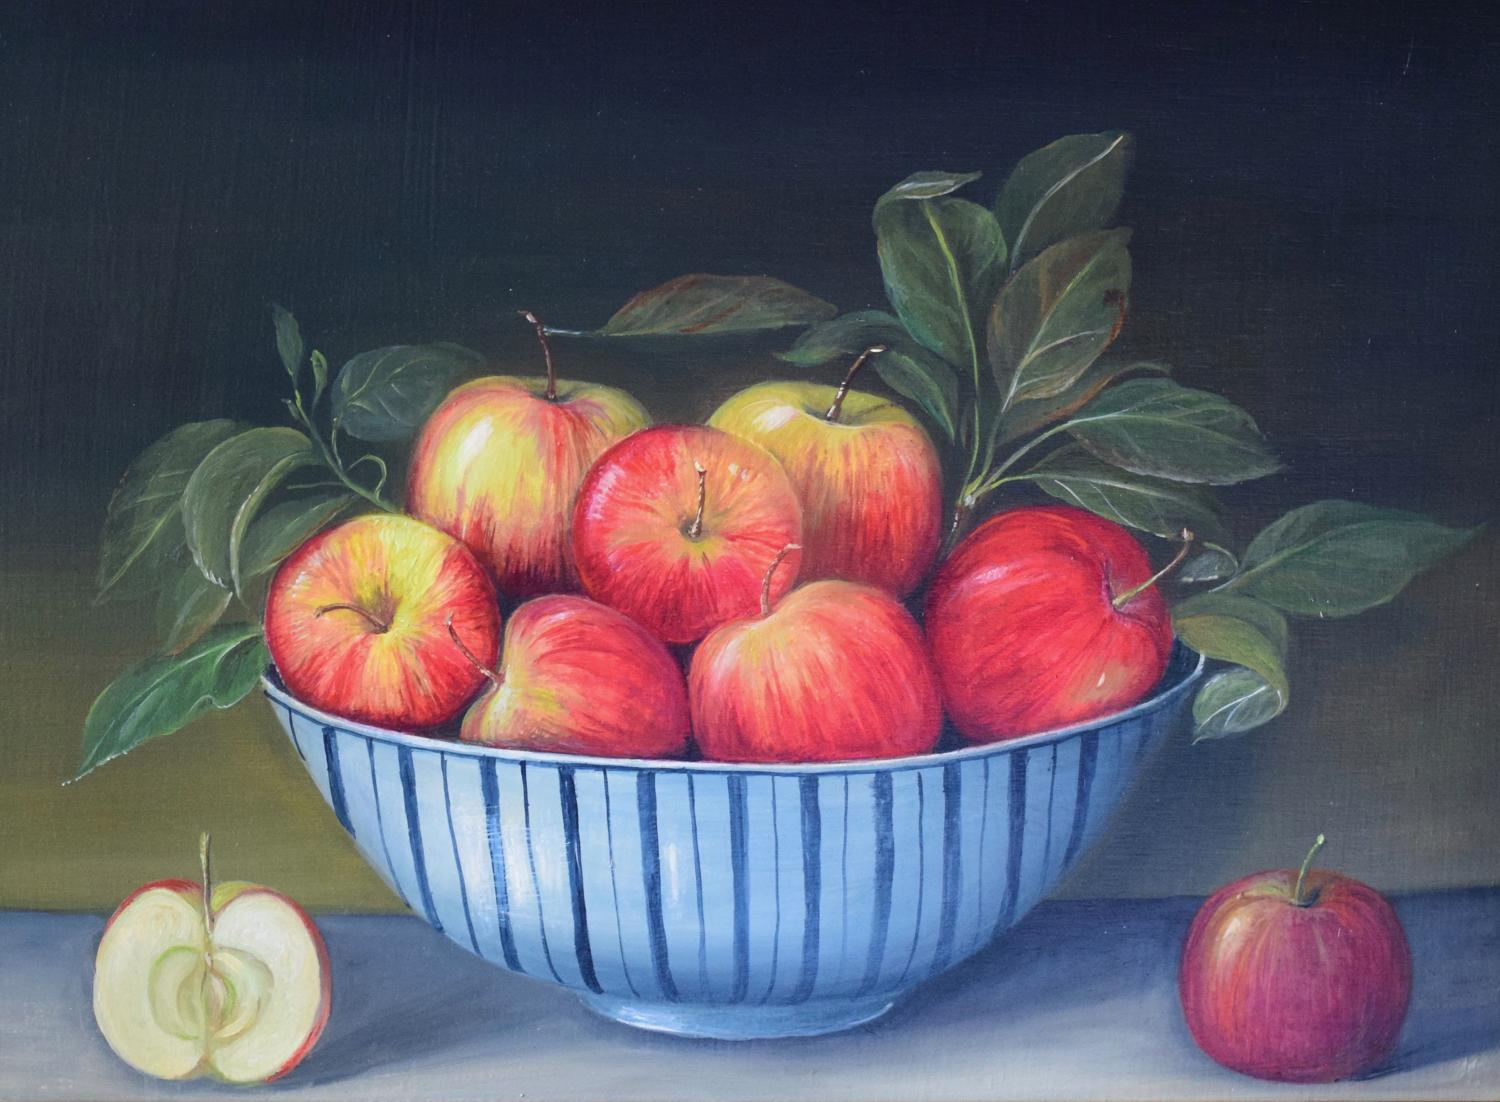 Bowl of apples.